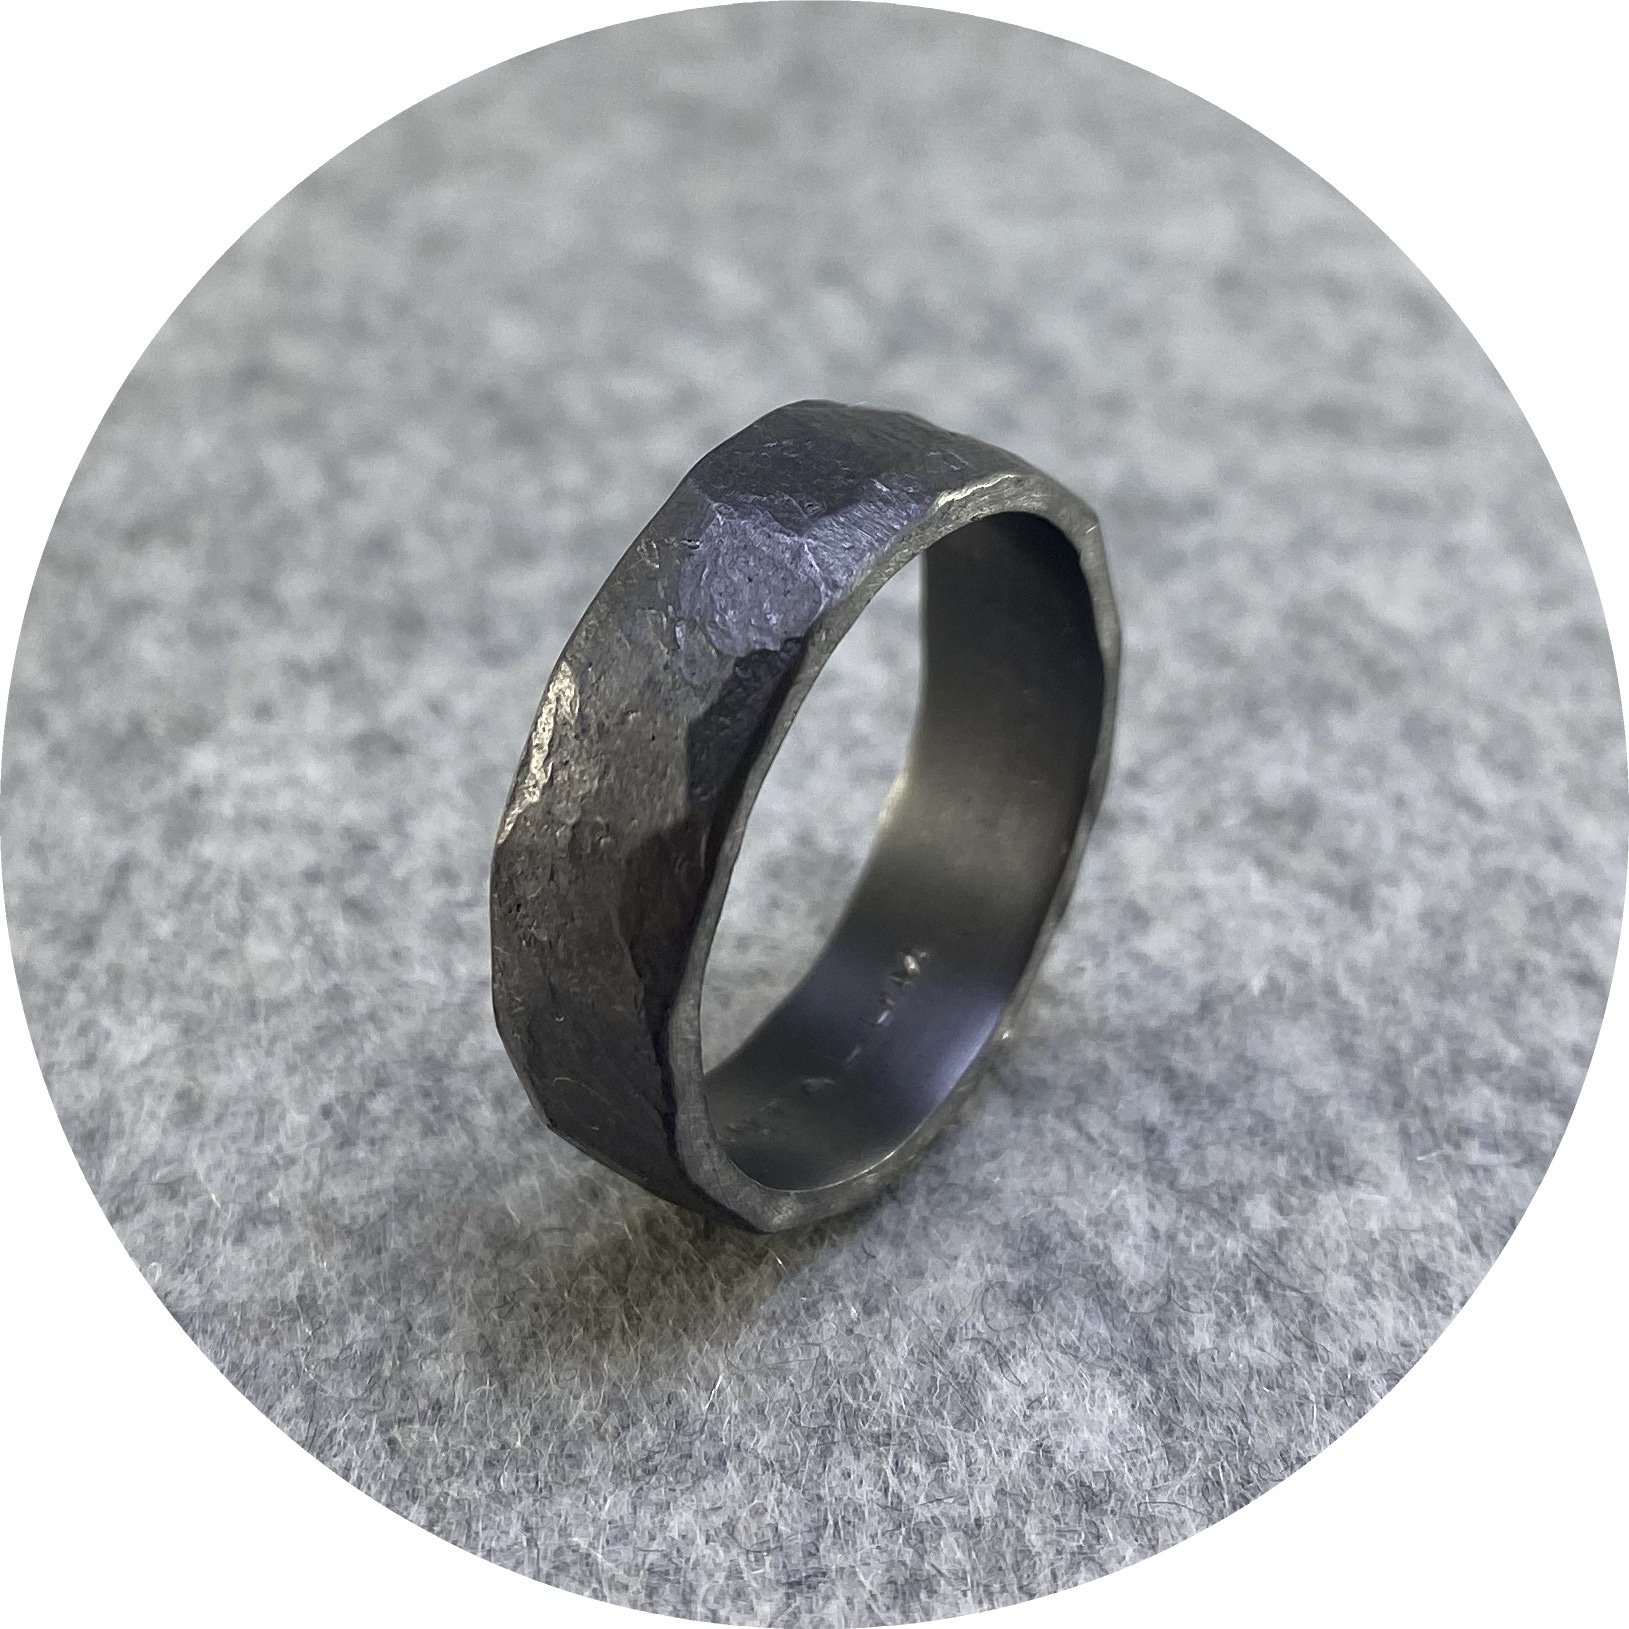 Brendan Cunningham - '7mm Hammered Band', tantalum  V